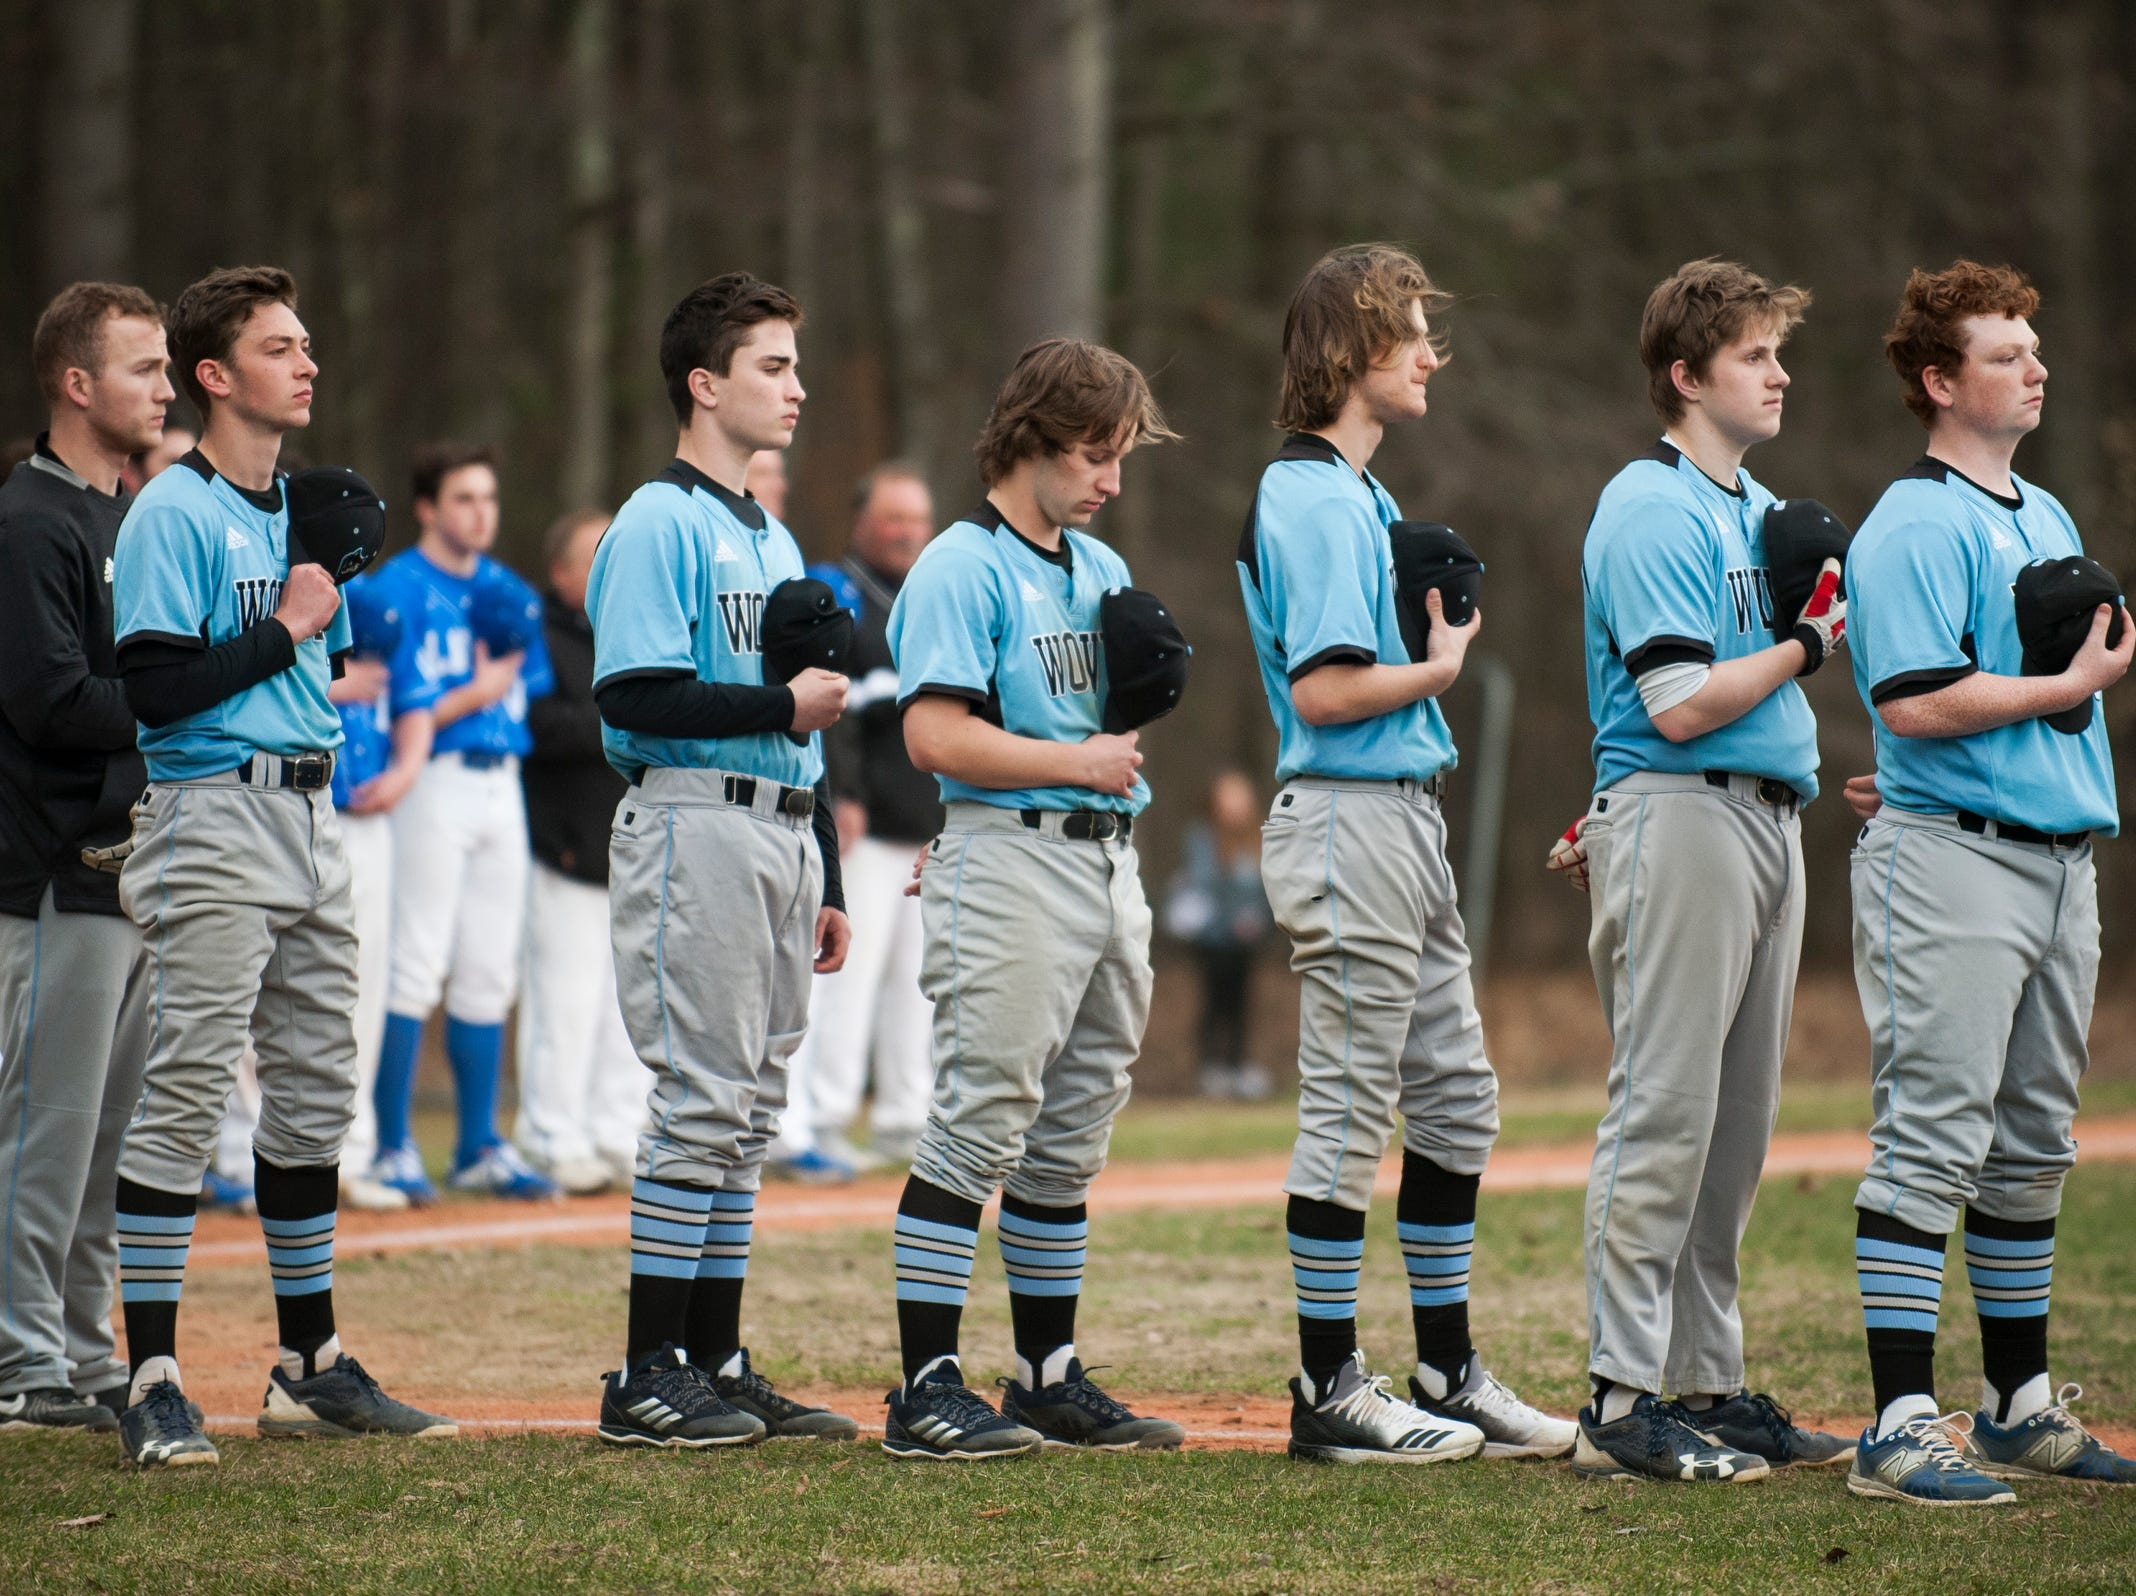 South Burlington listens to the National Anthem during the boys baseball game between the South Burlington Wolves and the Colchester Lakers at Colchester high school on Thursday afternoon April 18, 2019 in Colchester, Vermont.